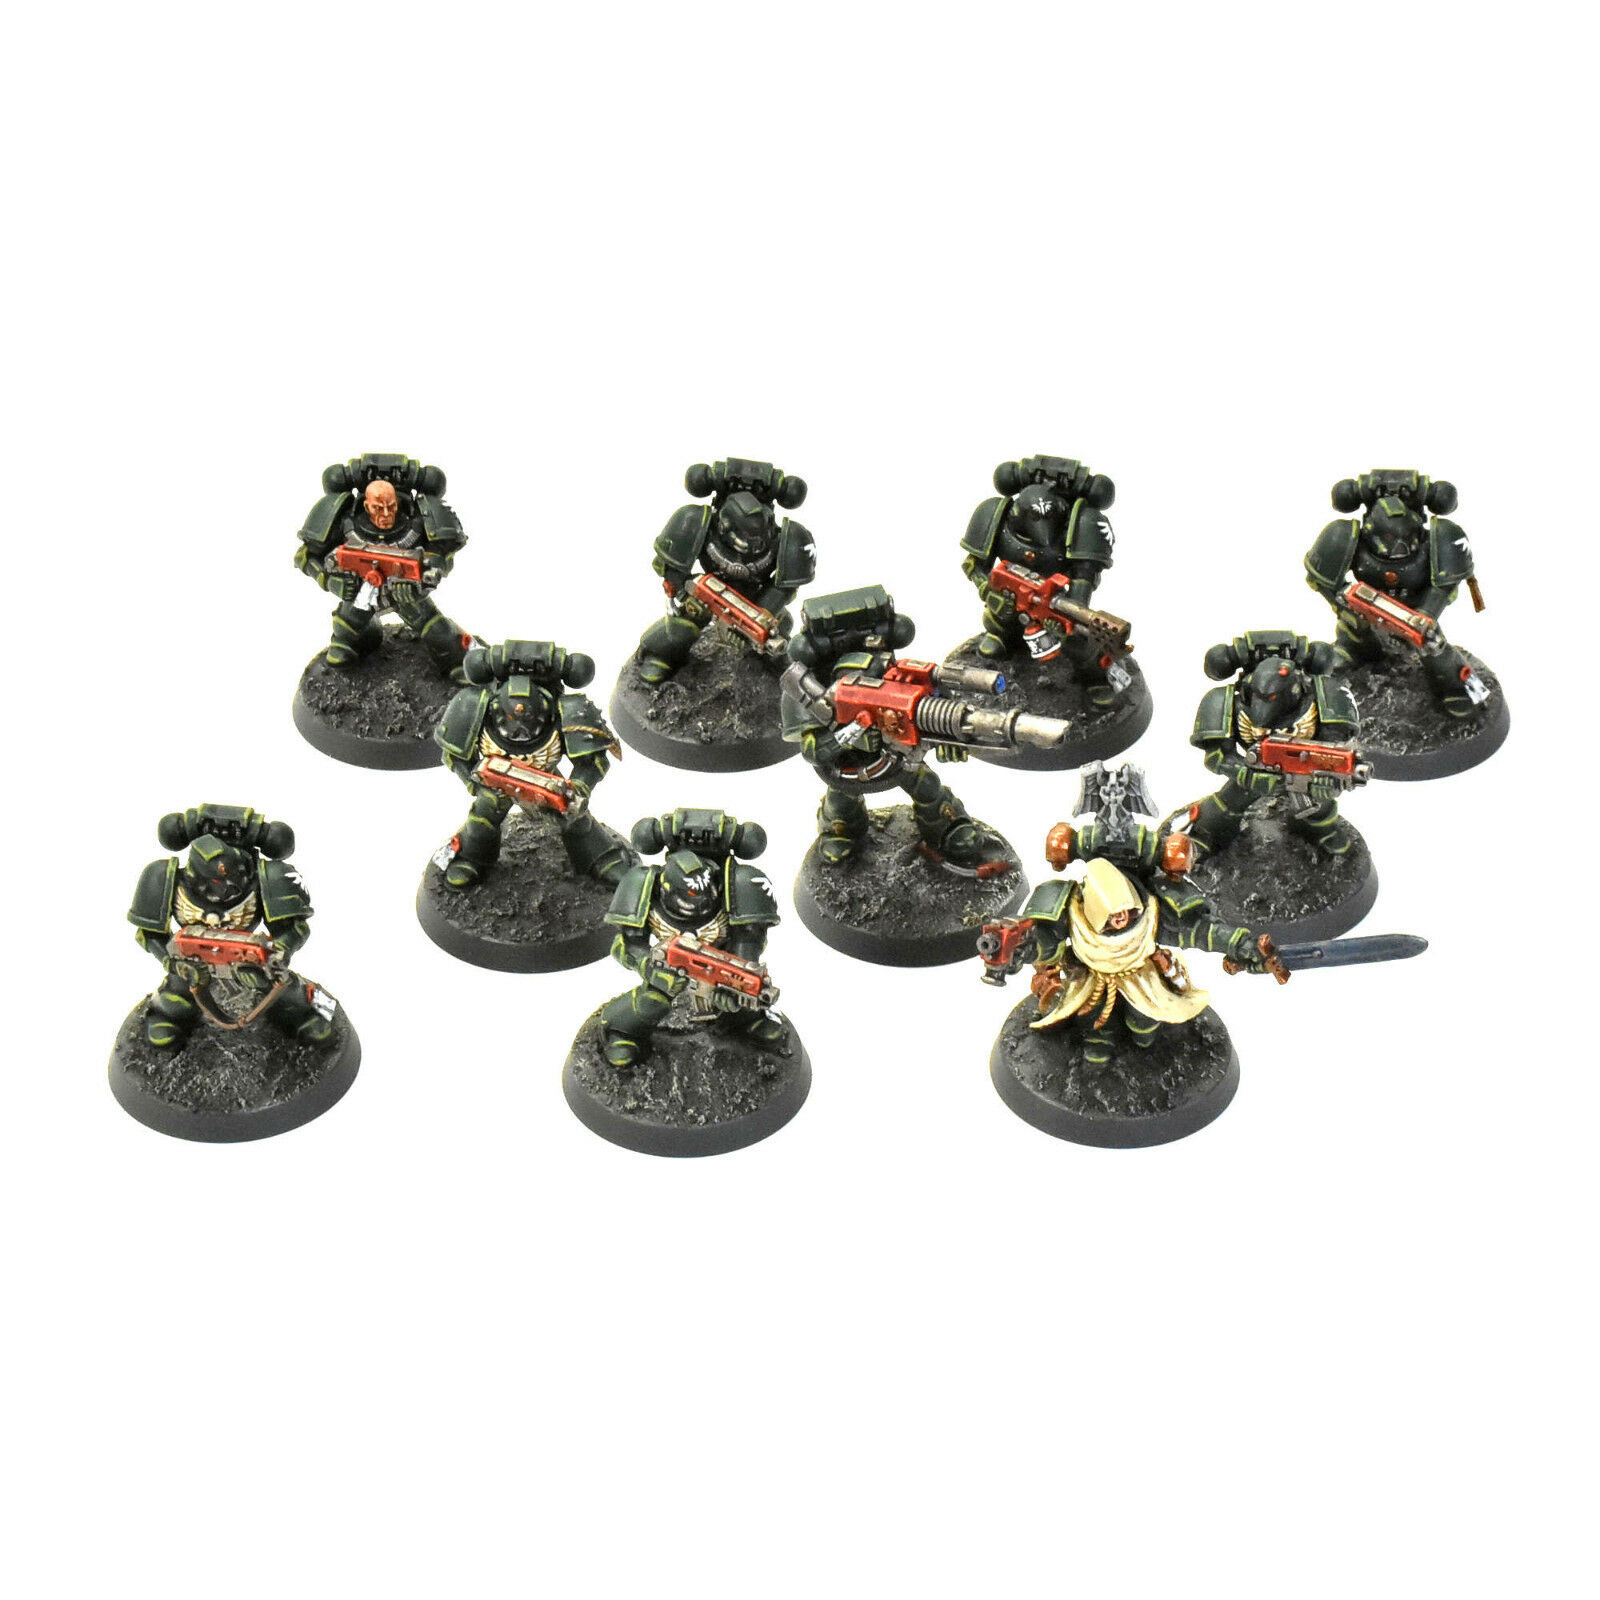 DARK ANGELS tactical squad  1 PRO PAINTED Warhammer 40K   livraison gratuite!